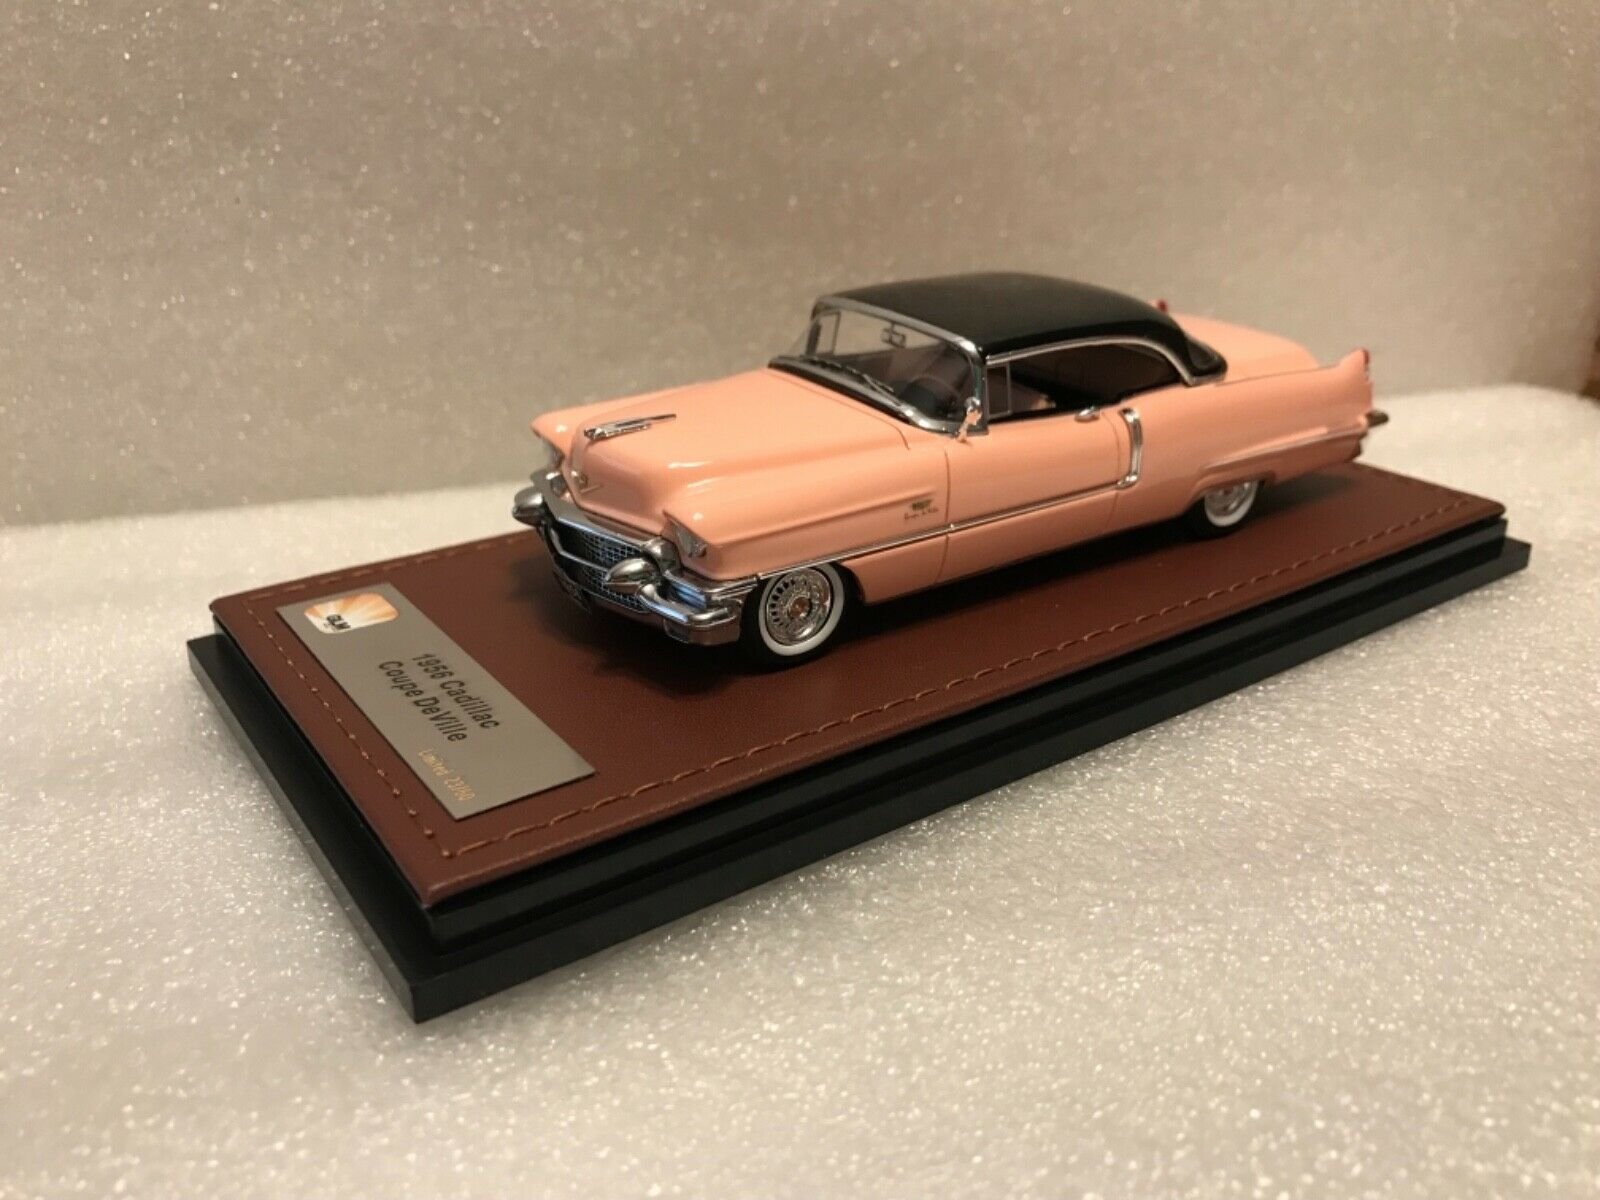 1956 Cadillac Coupe deVille 1 43 GLM resin n Neo Brooklin Mountain Laurel,Bk Ltd